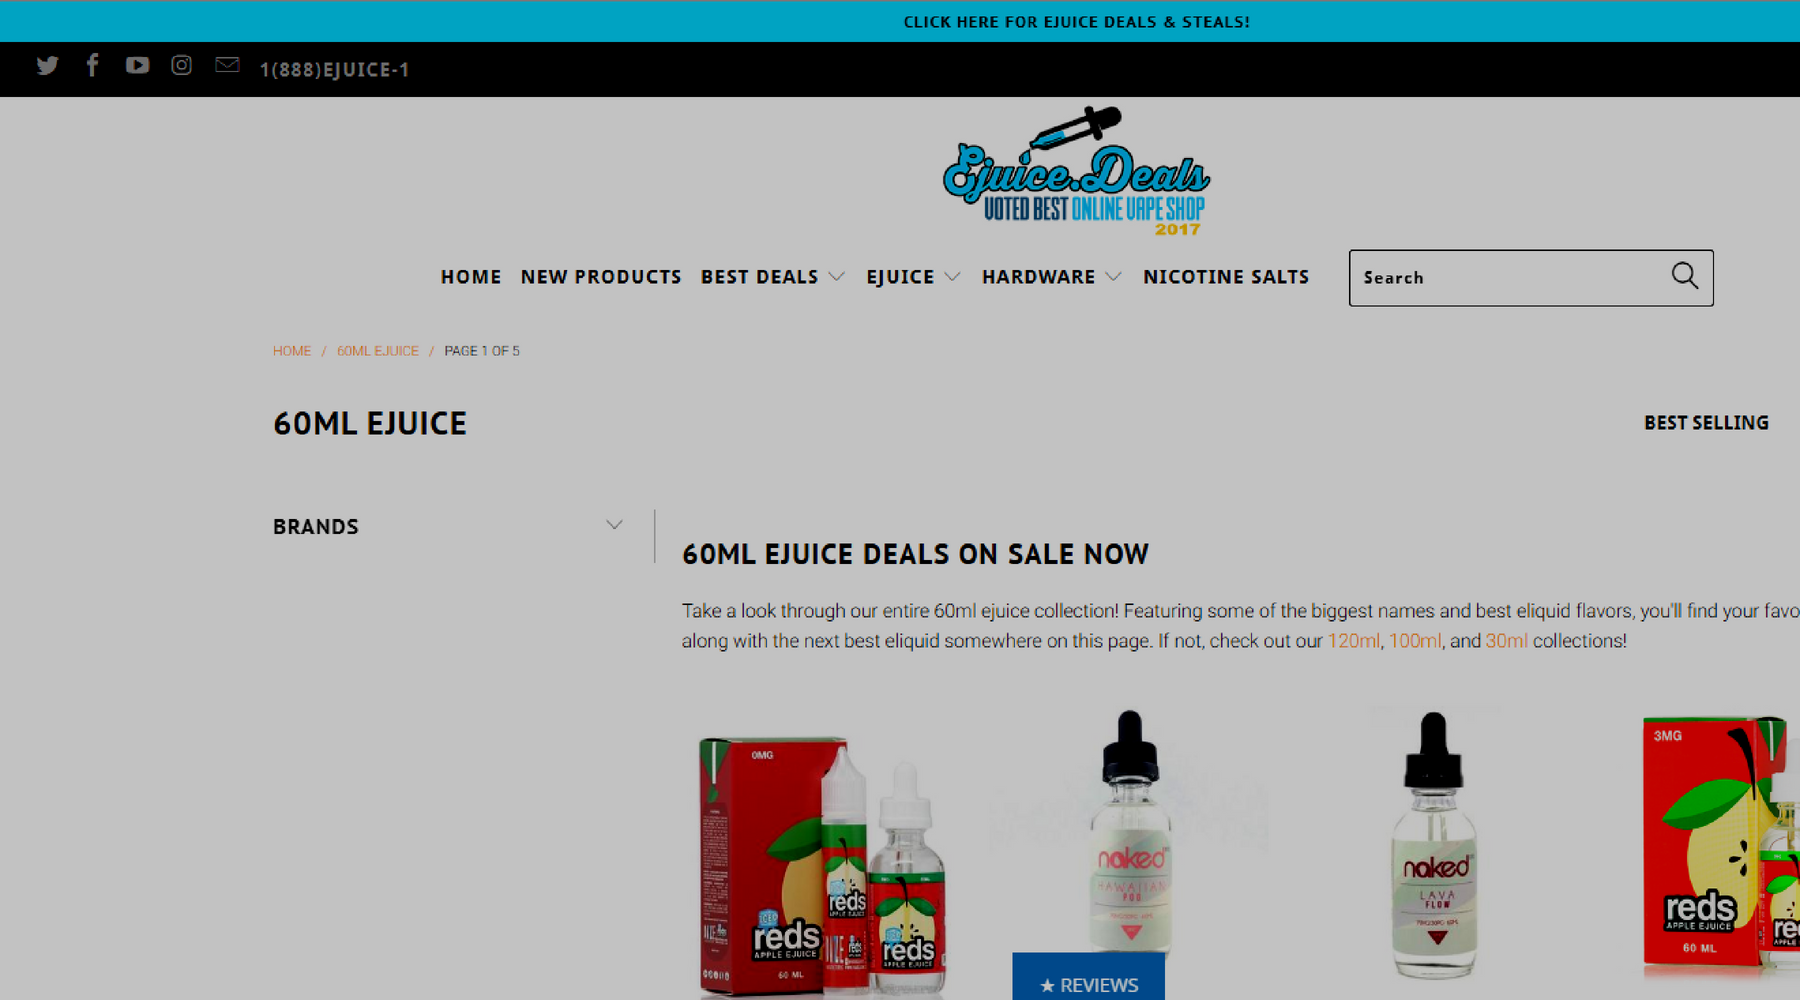 How To Start An Online Vape Shop: Your Complete Check-List